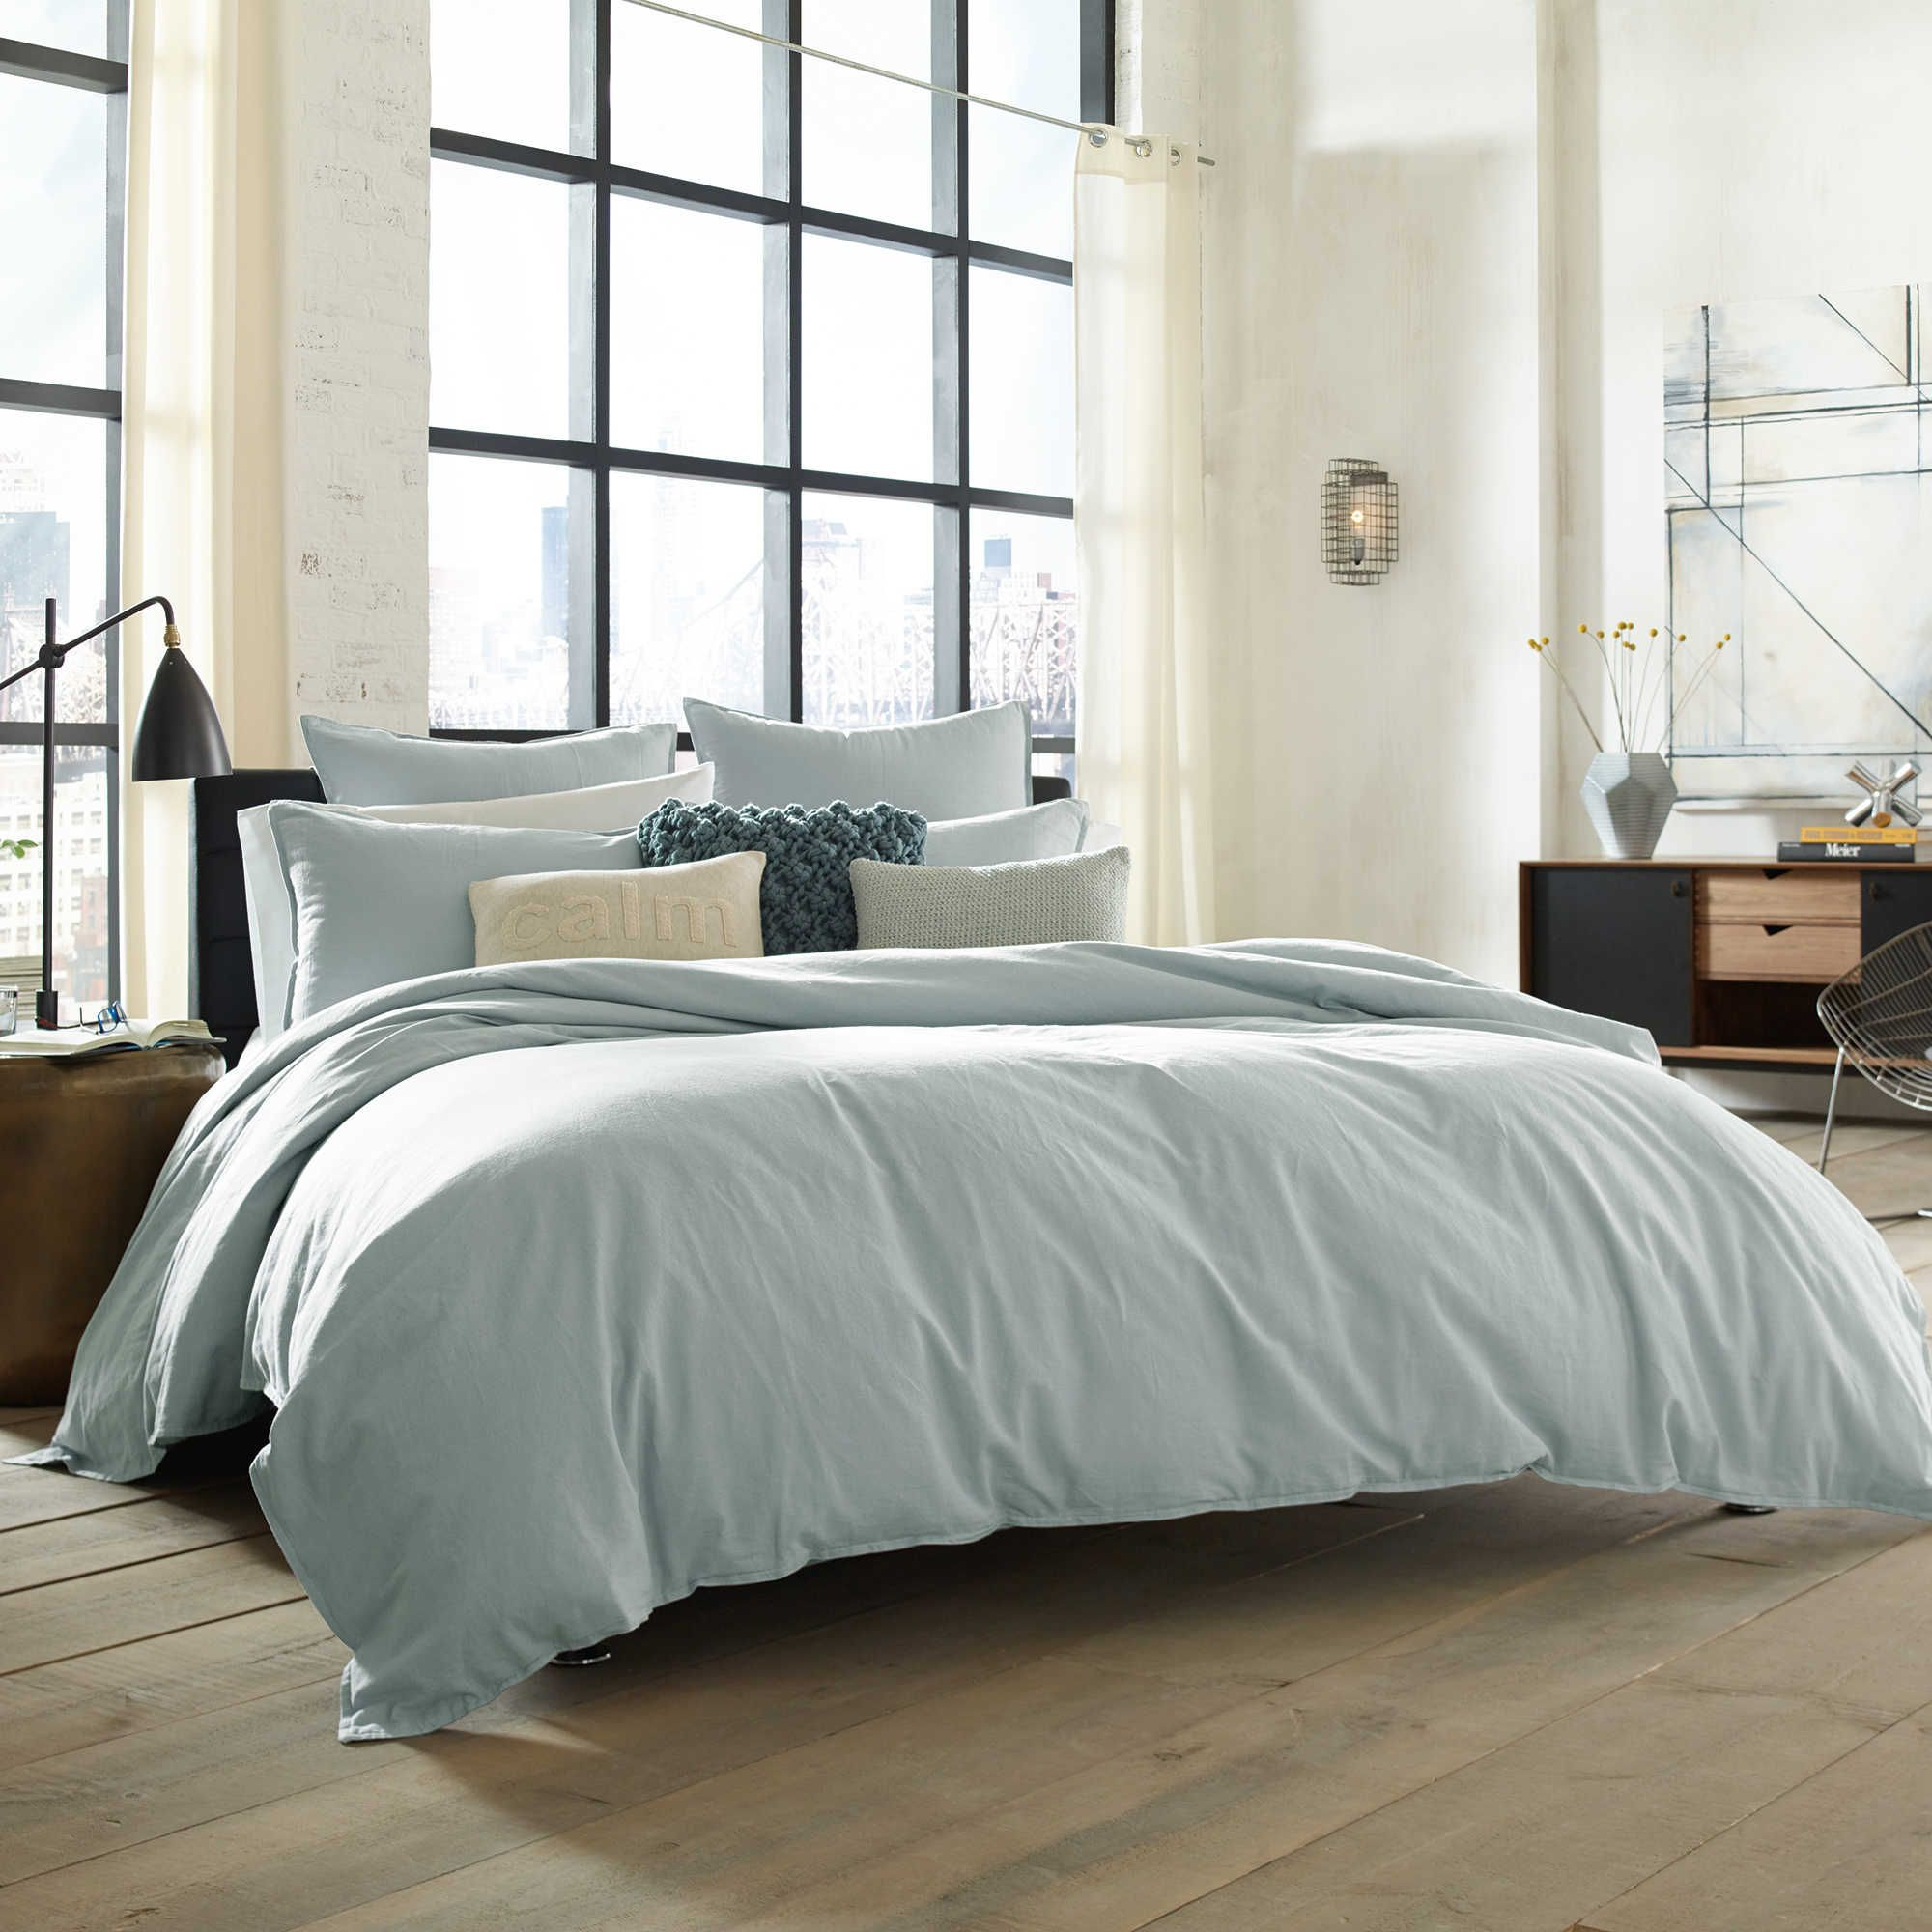 Kenneth Cole Reaction Home Mineral Comforter Home Master